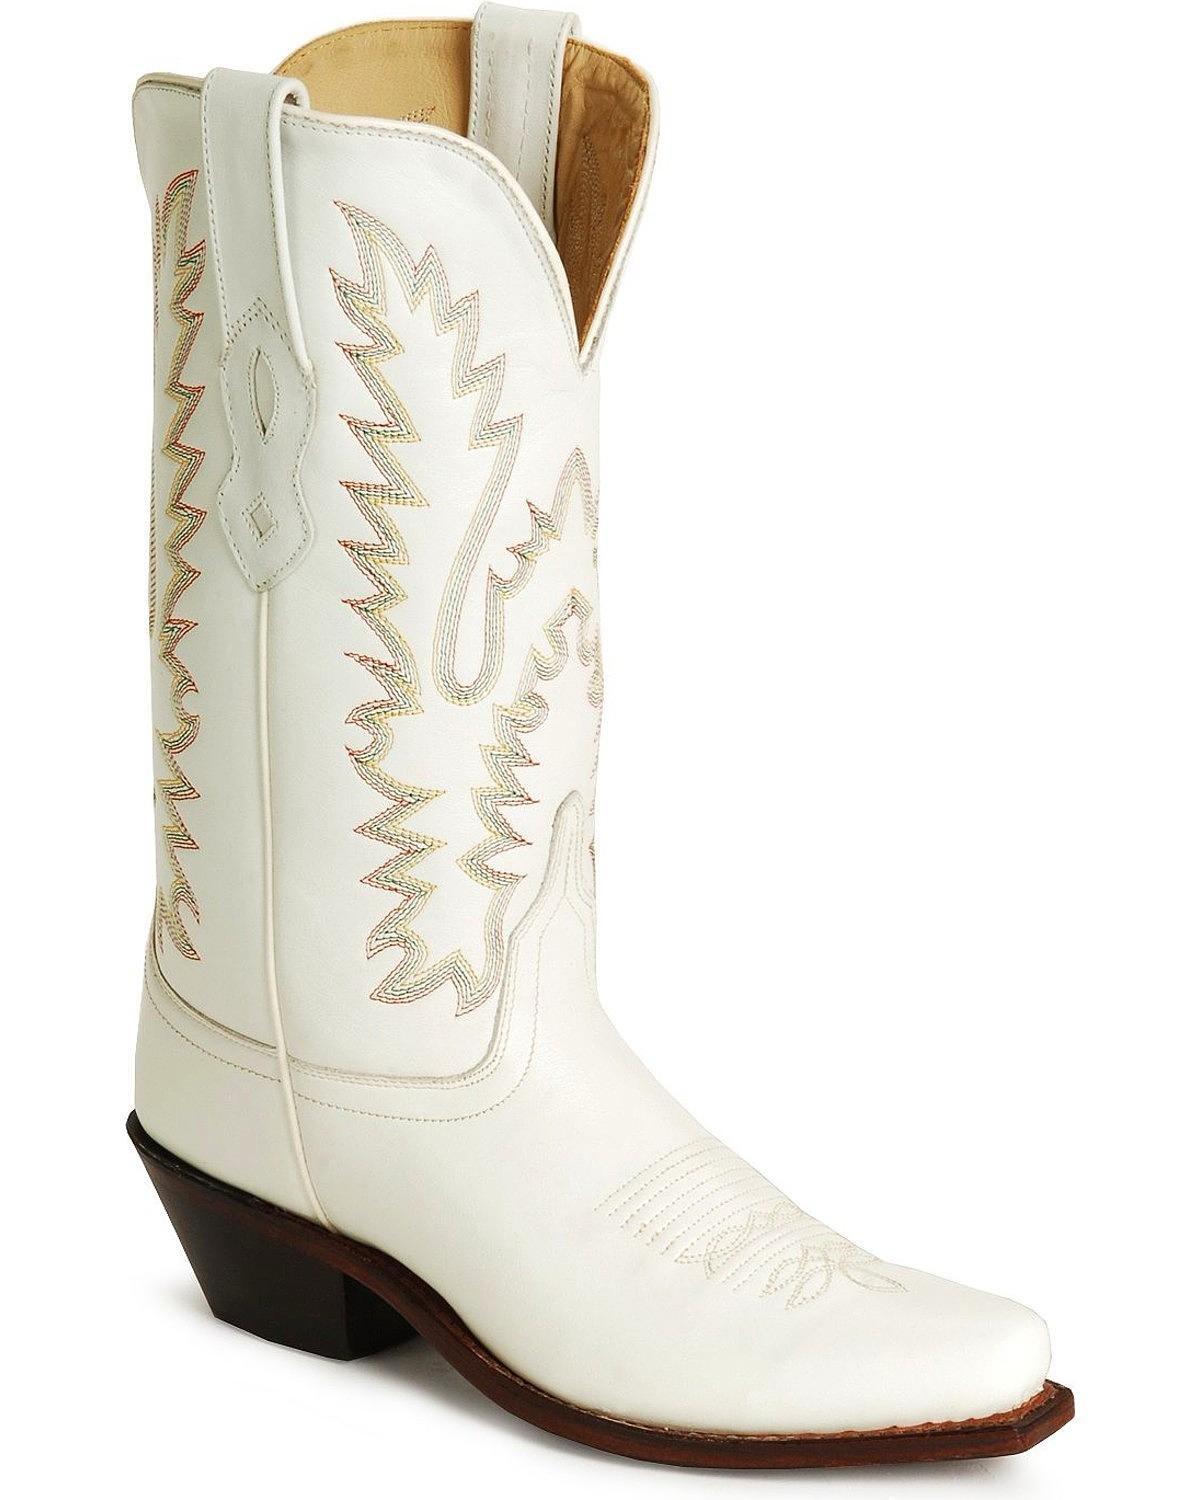 Old West Ladies Leather Fashion Cowgirl Boots B00FHZ9NGU 6.5 B(M) US|White